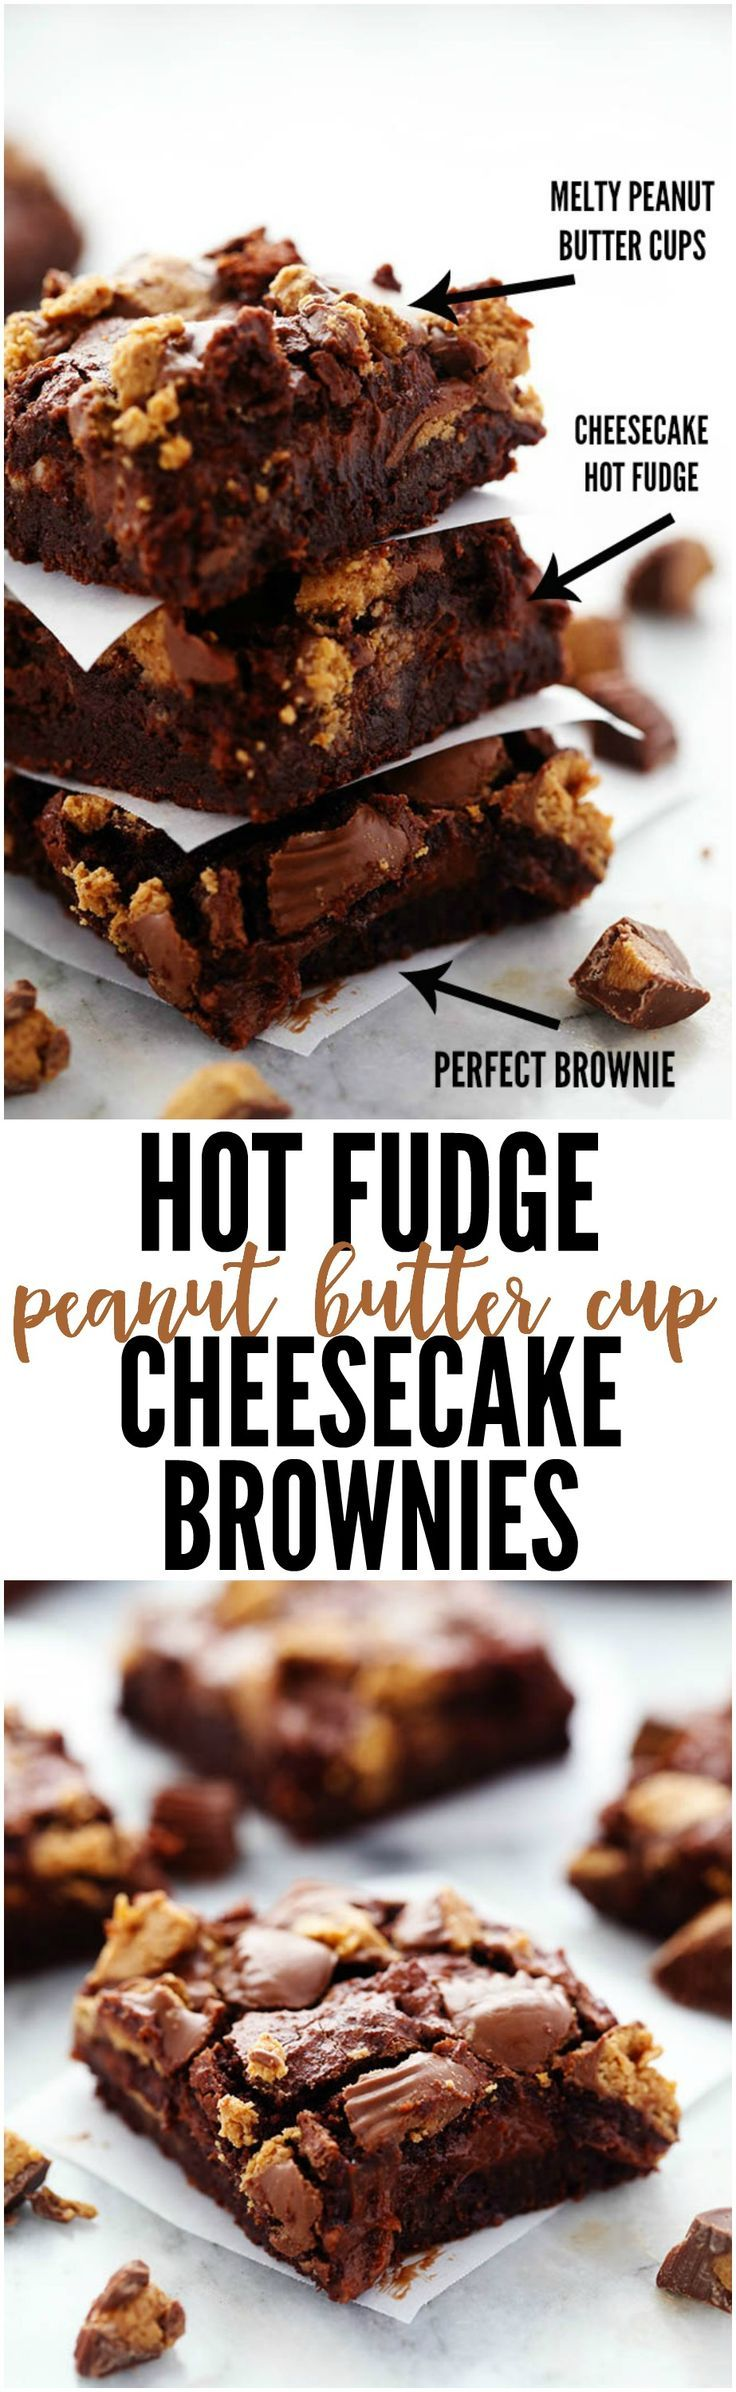 Hot Fudge Peanut Butter Cup Cheesecake Brownies - Ultra rich brownies with a creamy hot fudge cheesecake center and topped with peanut butter cups. So many delicious things in one amazing brownie that your family will go crazy for!